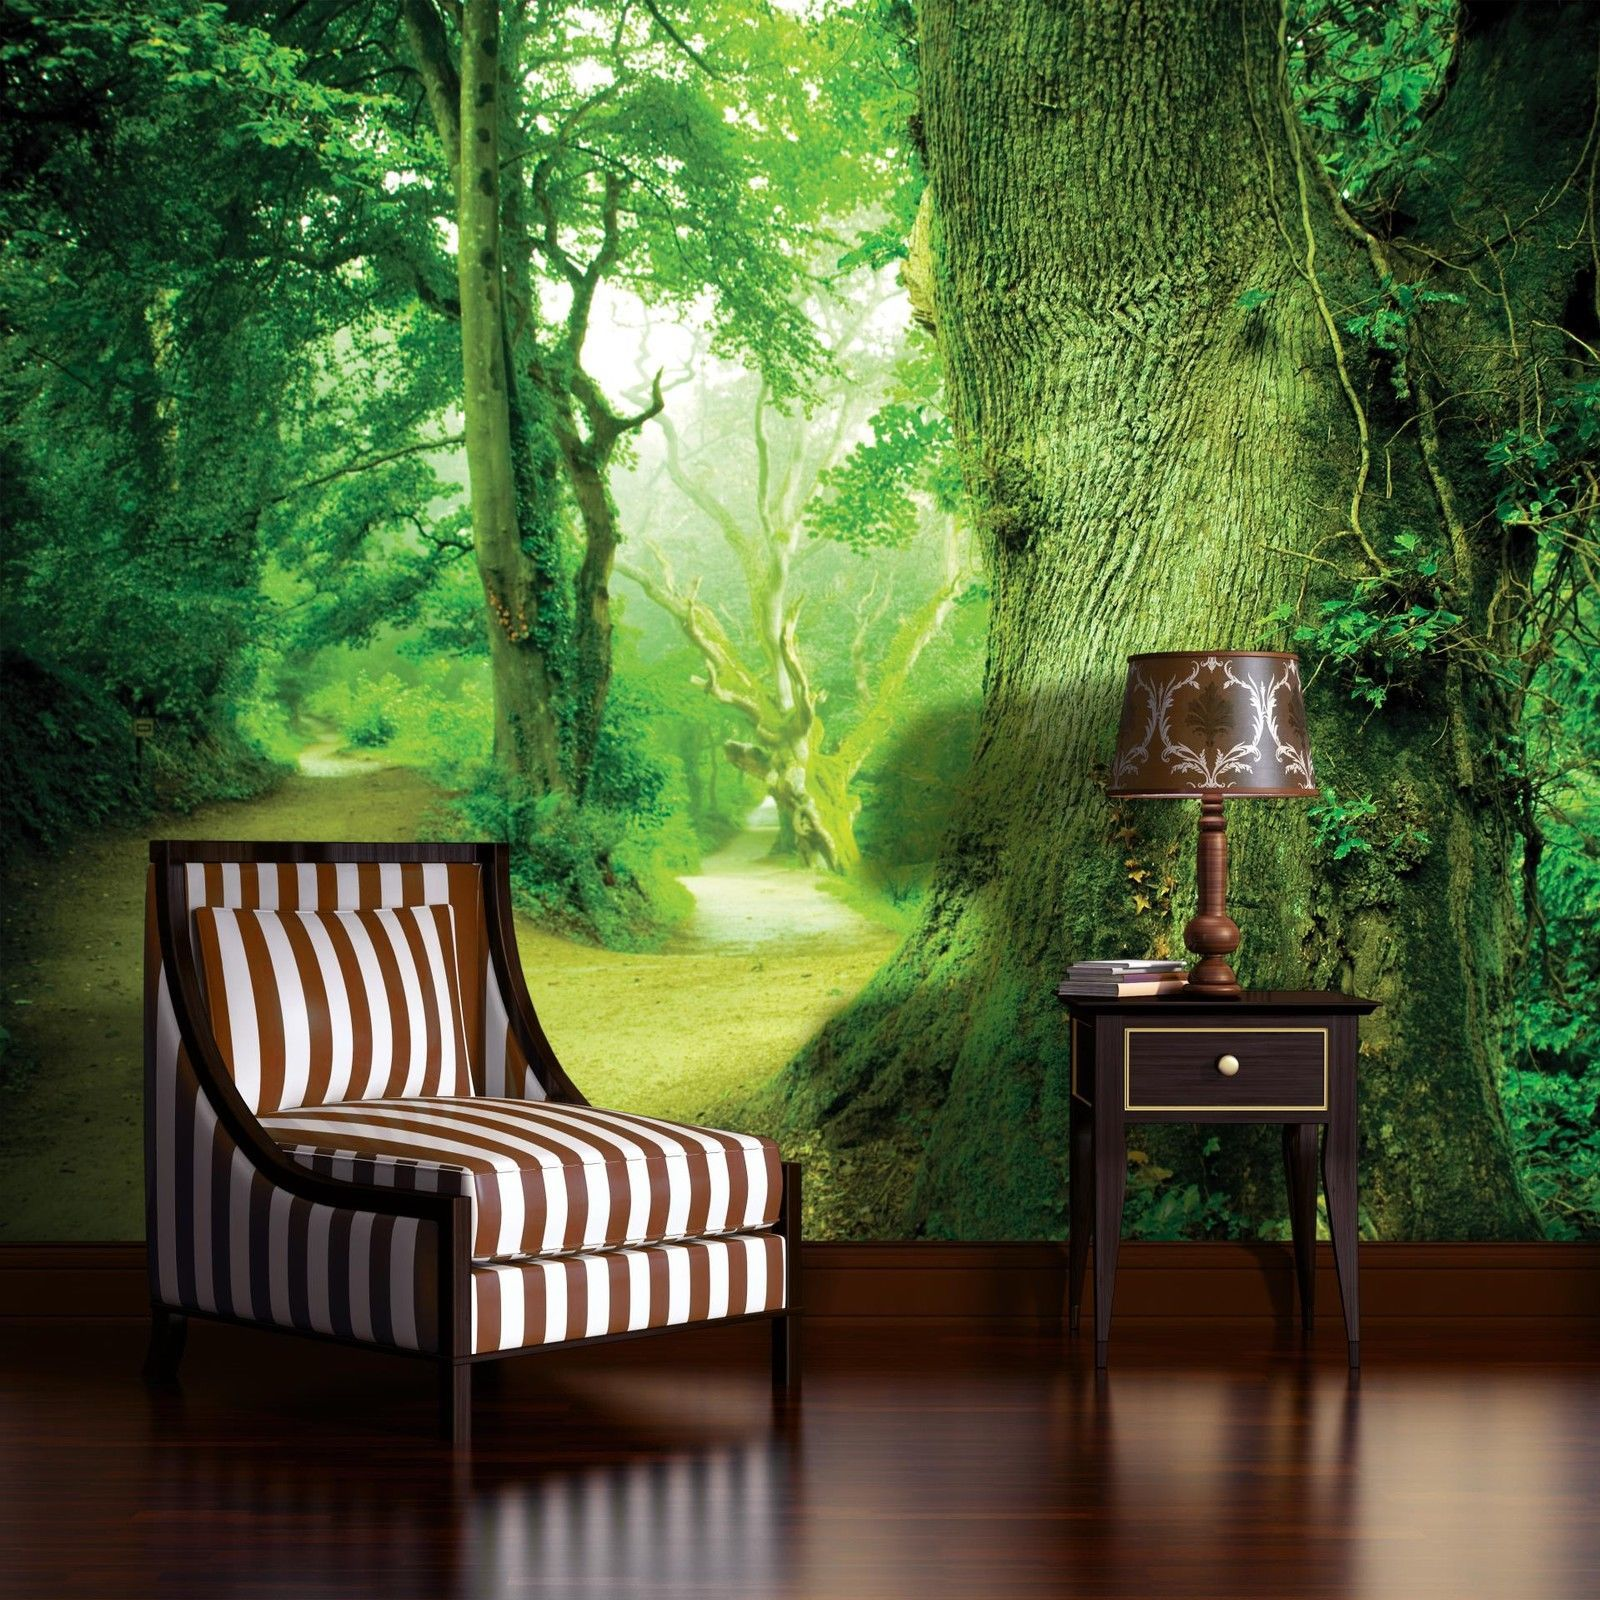 fototapete fototapeten tapete tapeten poster zauberwald baum wald 290 p4 for sale eur 29 90. Black Bedroom Furniture Sets. Home Design Ideas